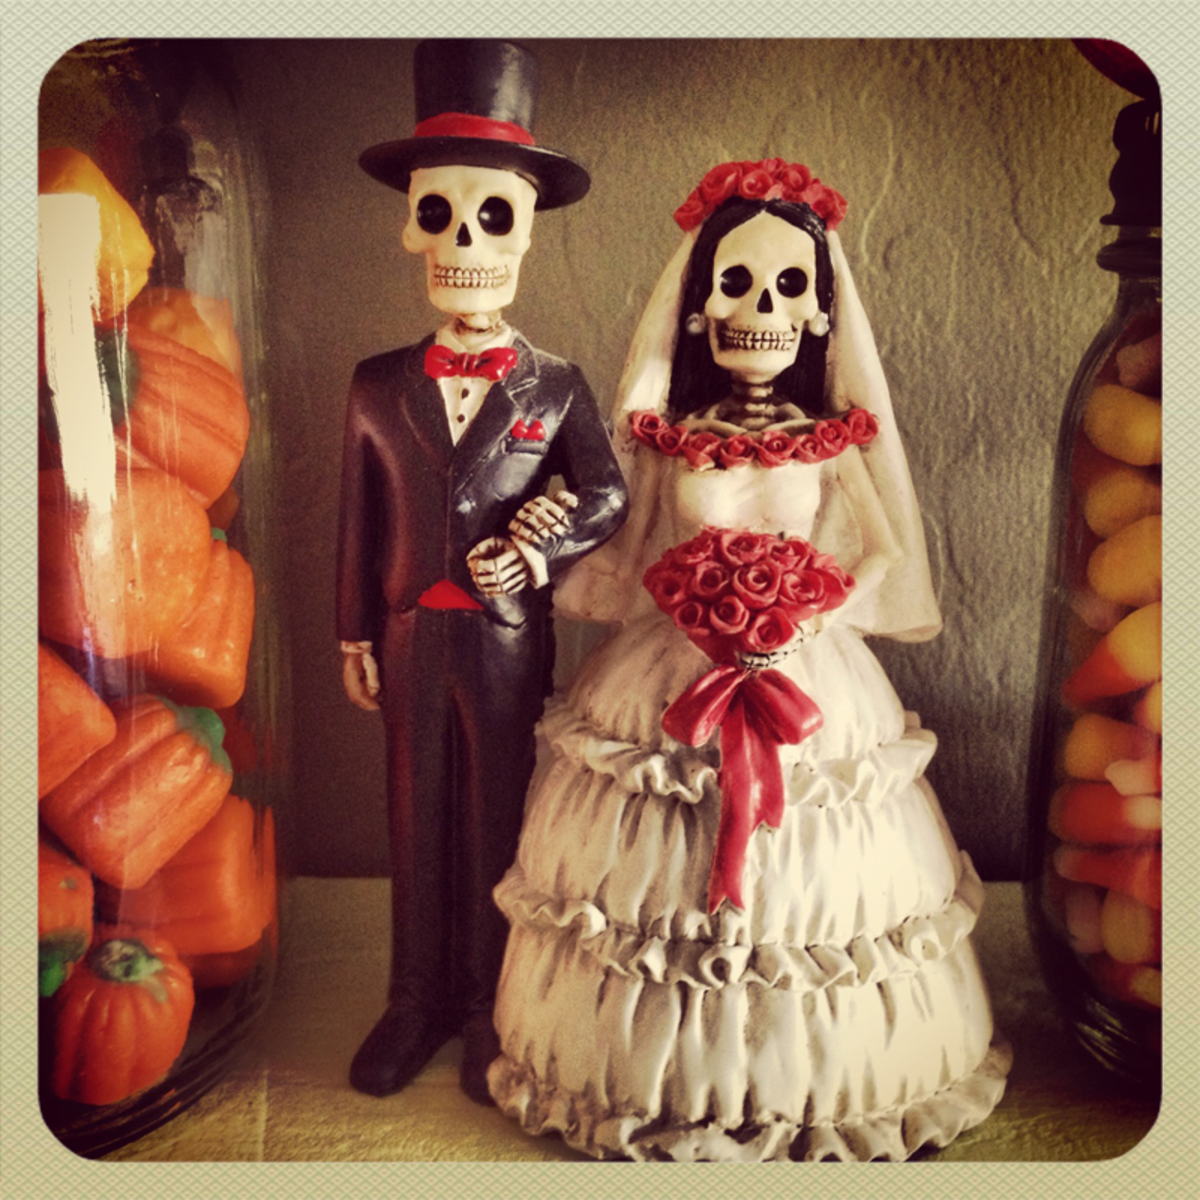 One of my favorite Day of the Dead decorations—a bride and groom figurine that was an engagement gift from my mother.